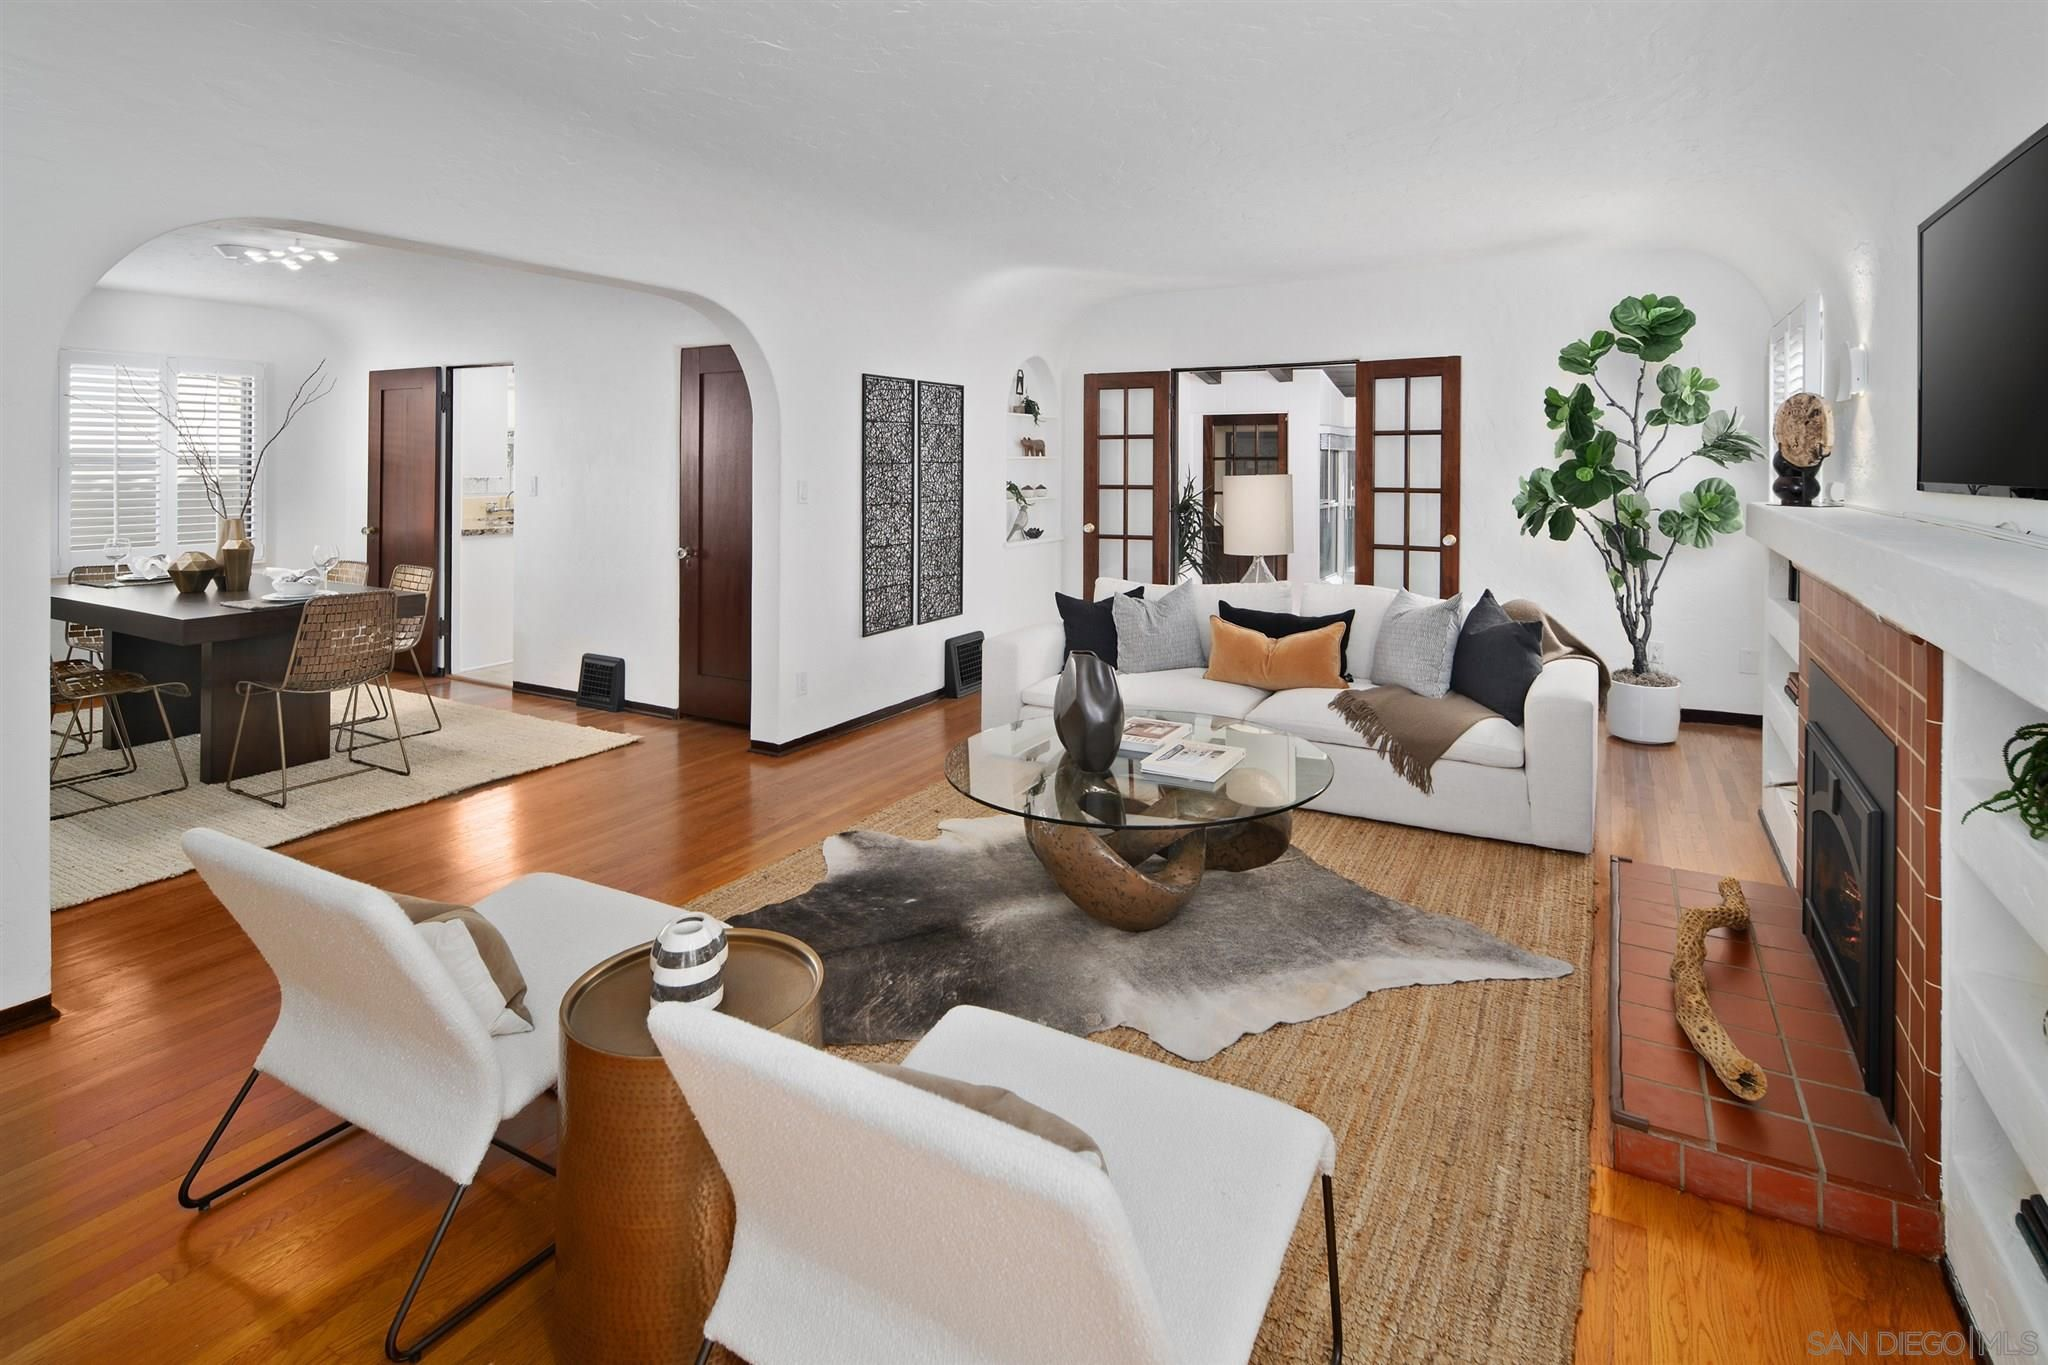 Main Photo: KENSINGTON House for sale : 4 bedrooms : 4331 Adams Ave in San Diego